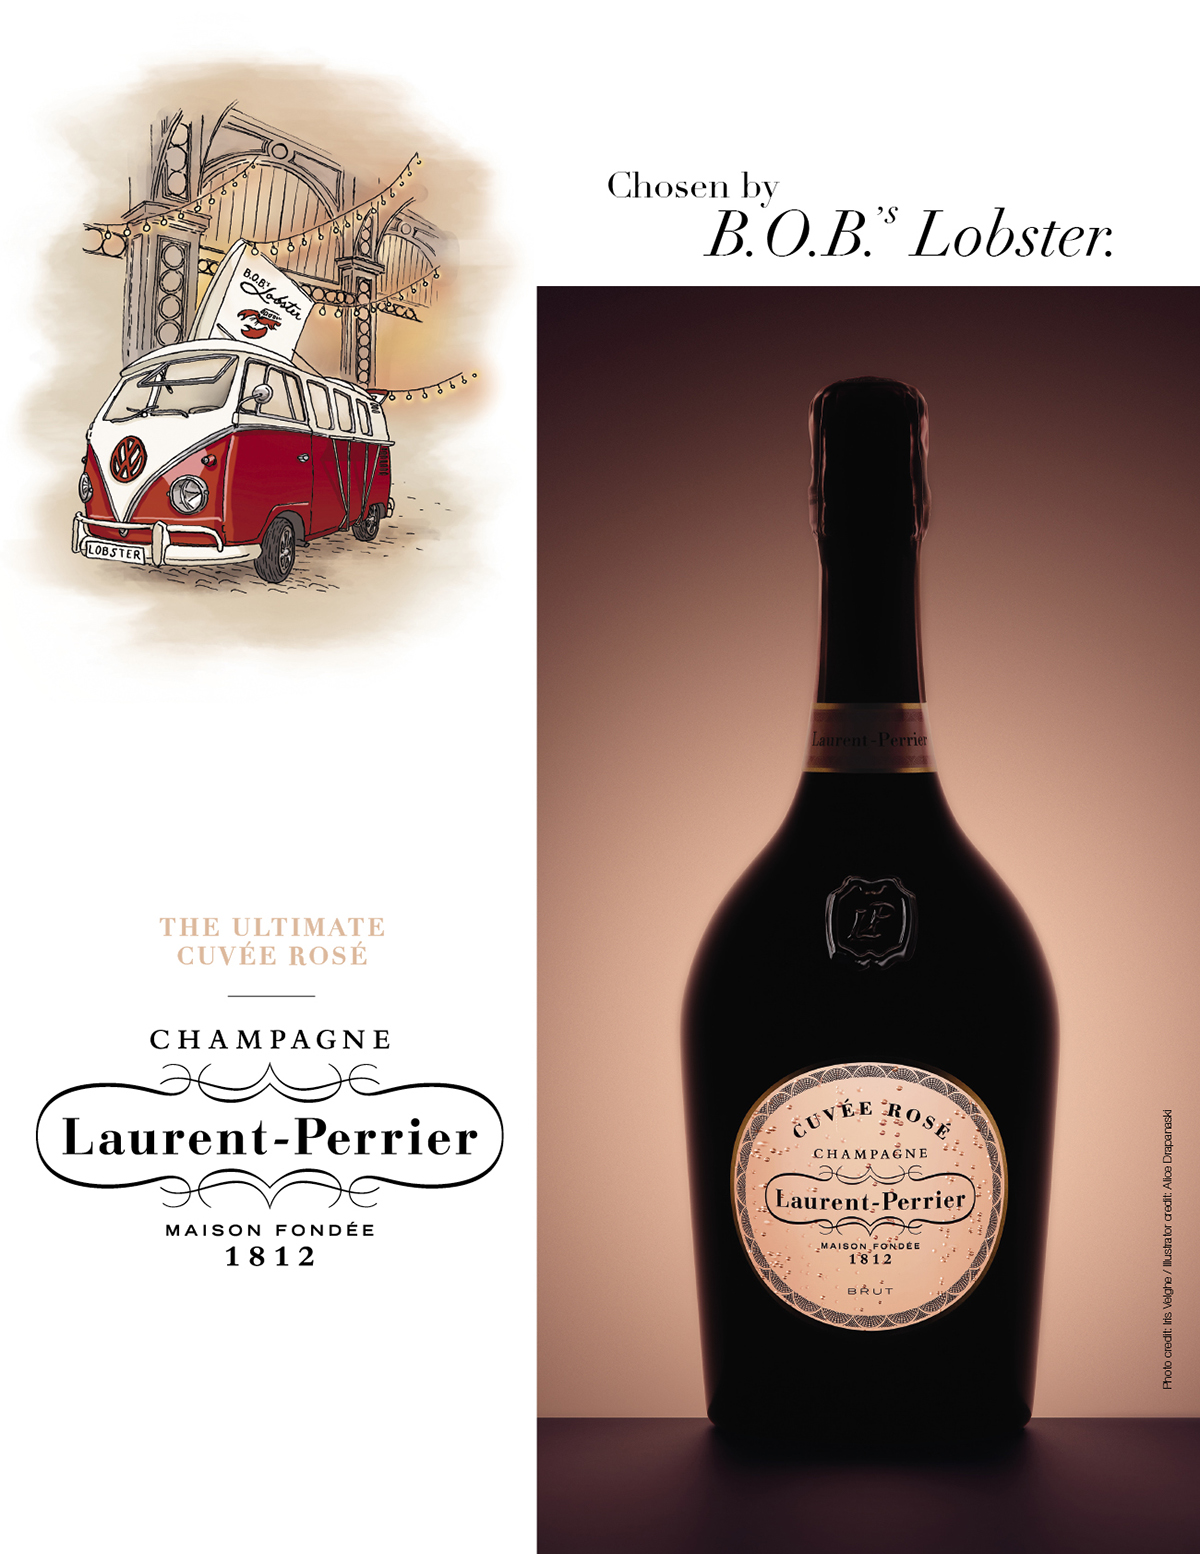 laurent-perrier-champagne-publicite-marketing-ads-cuvee-rose-tour-argent-meurice-gstaad-palace-ritz-dorchester-gavroche-agence-publicis-conseil-7